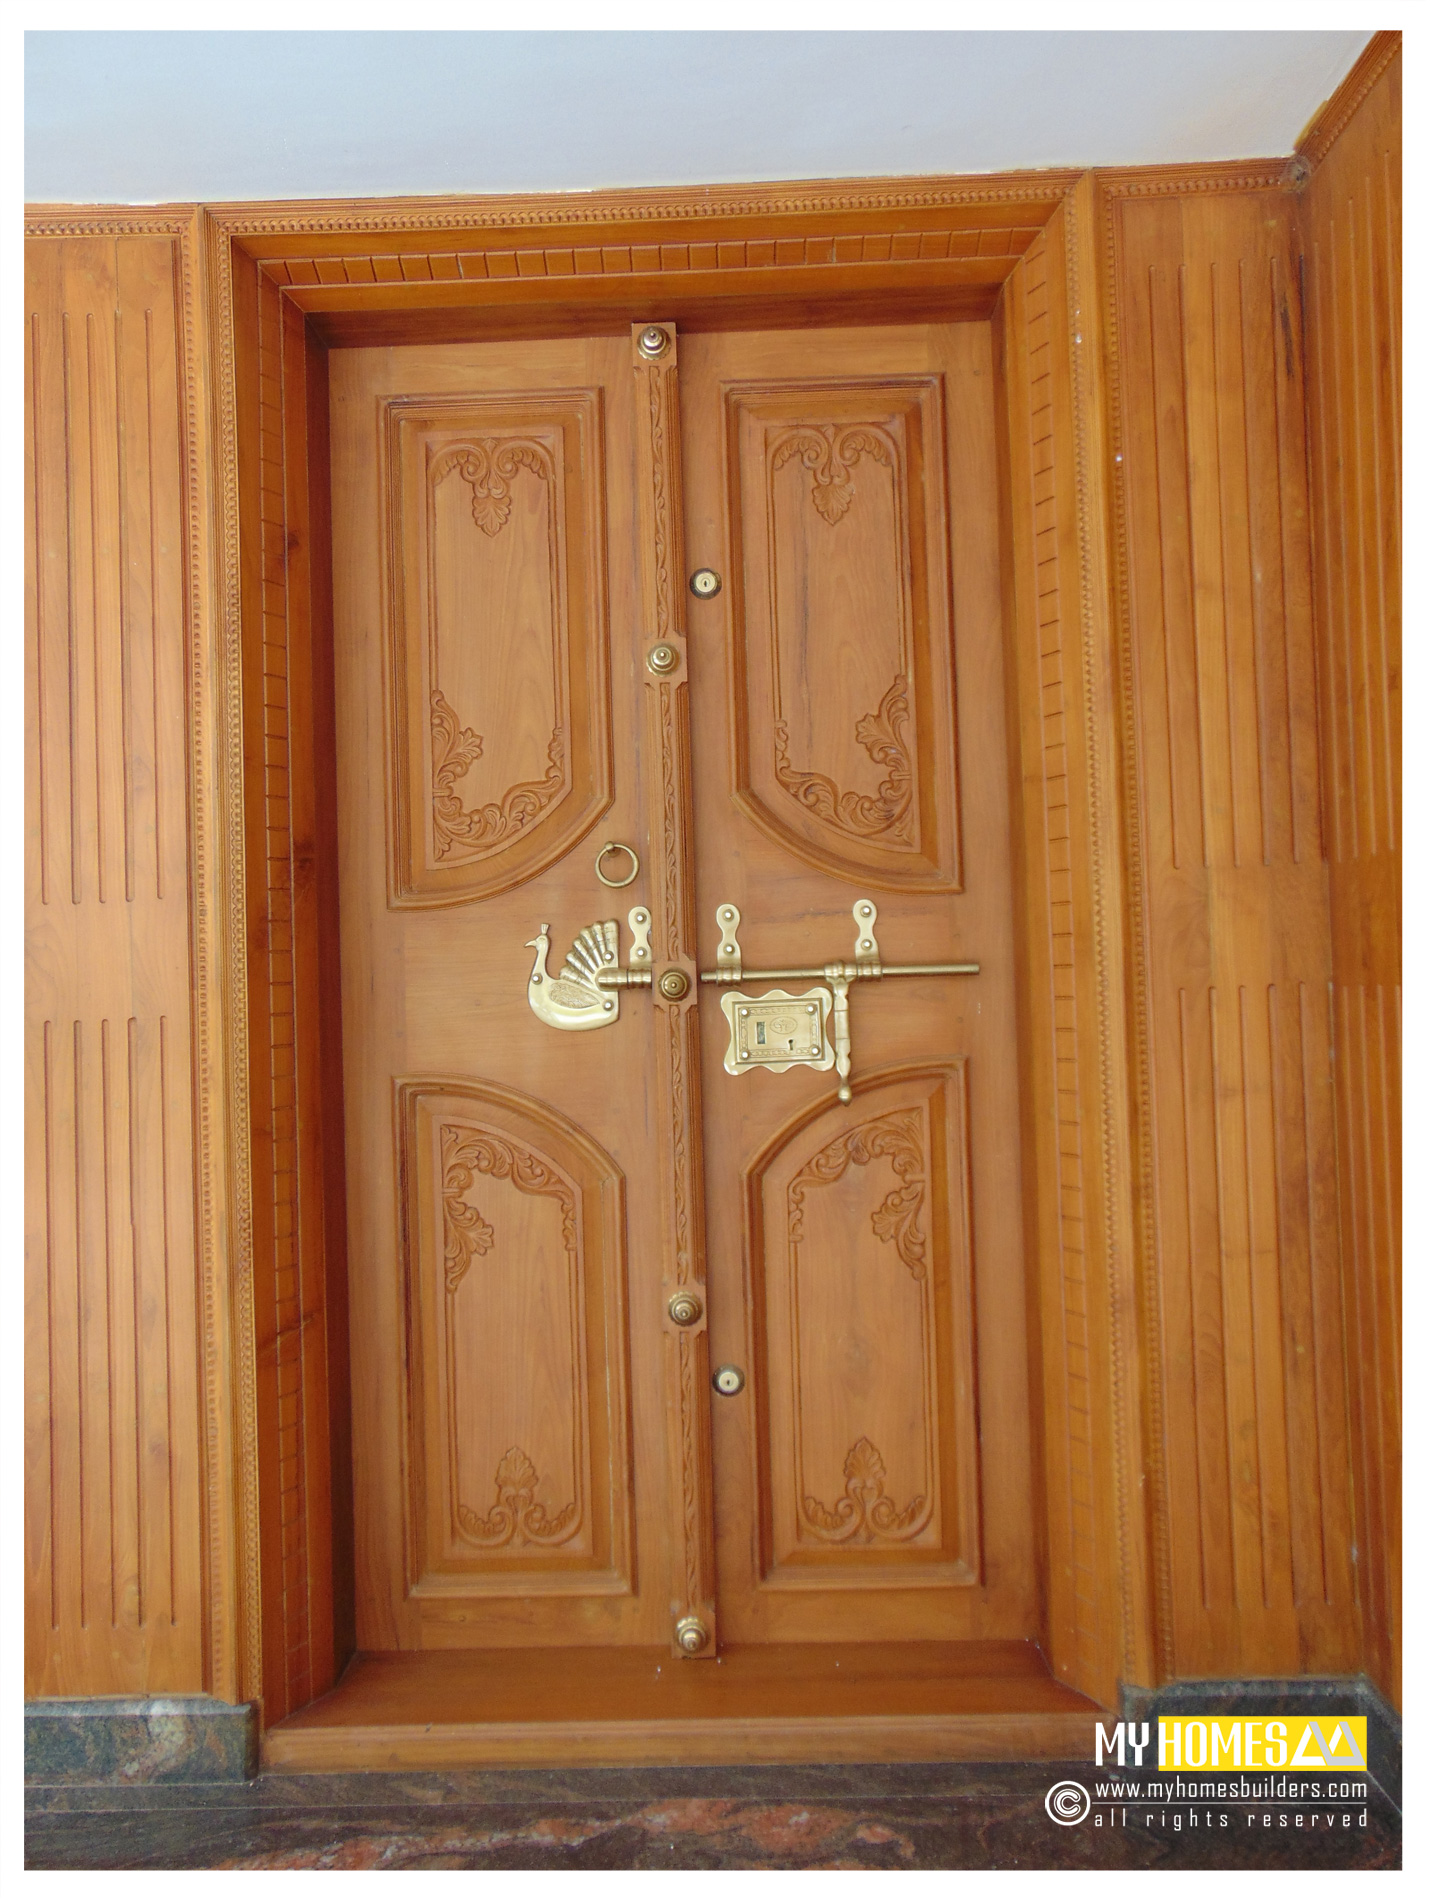 New idea for homes main door designs in kerala india for Contemporary house main door designs